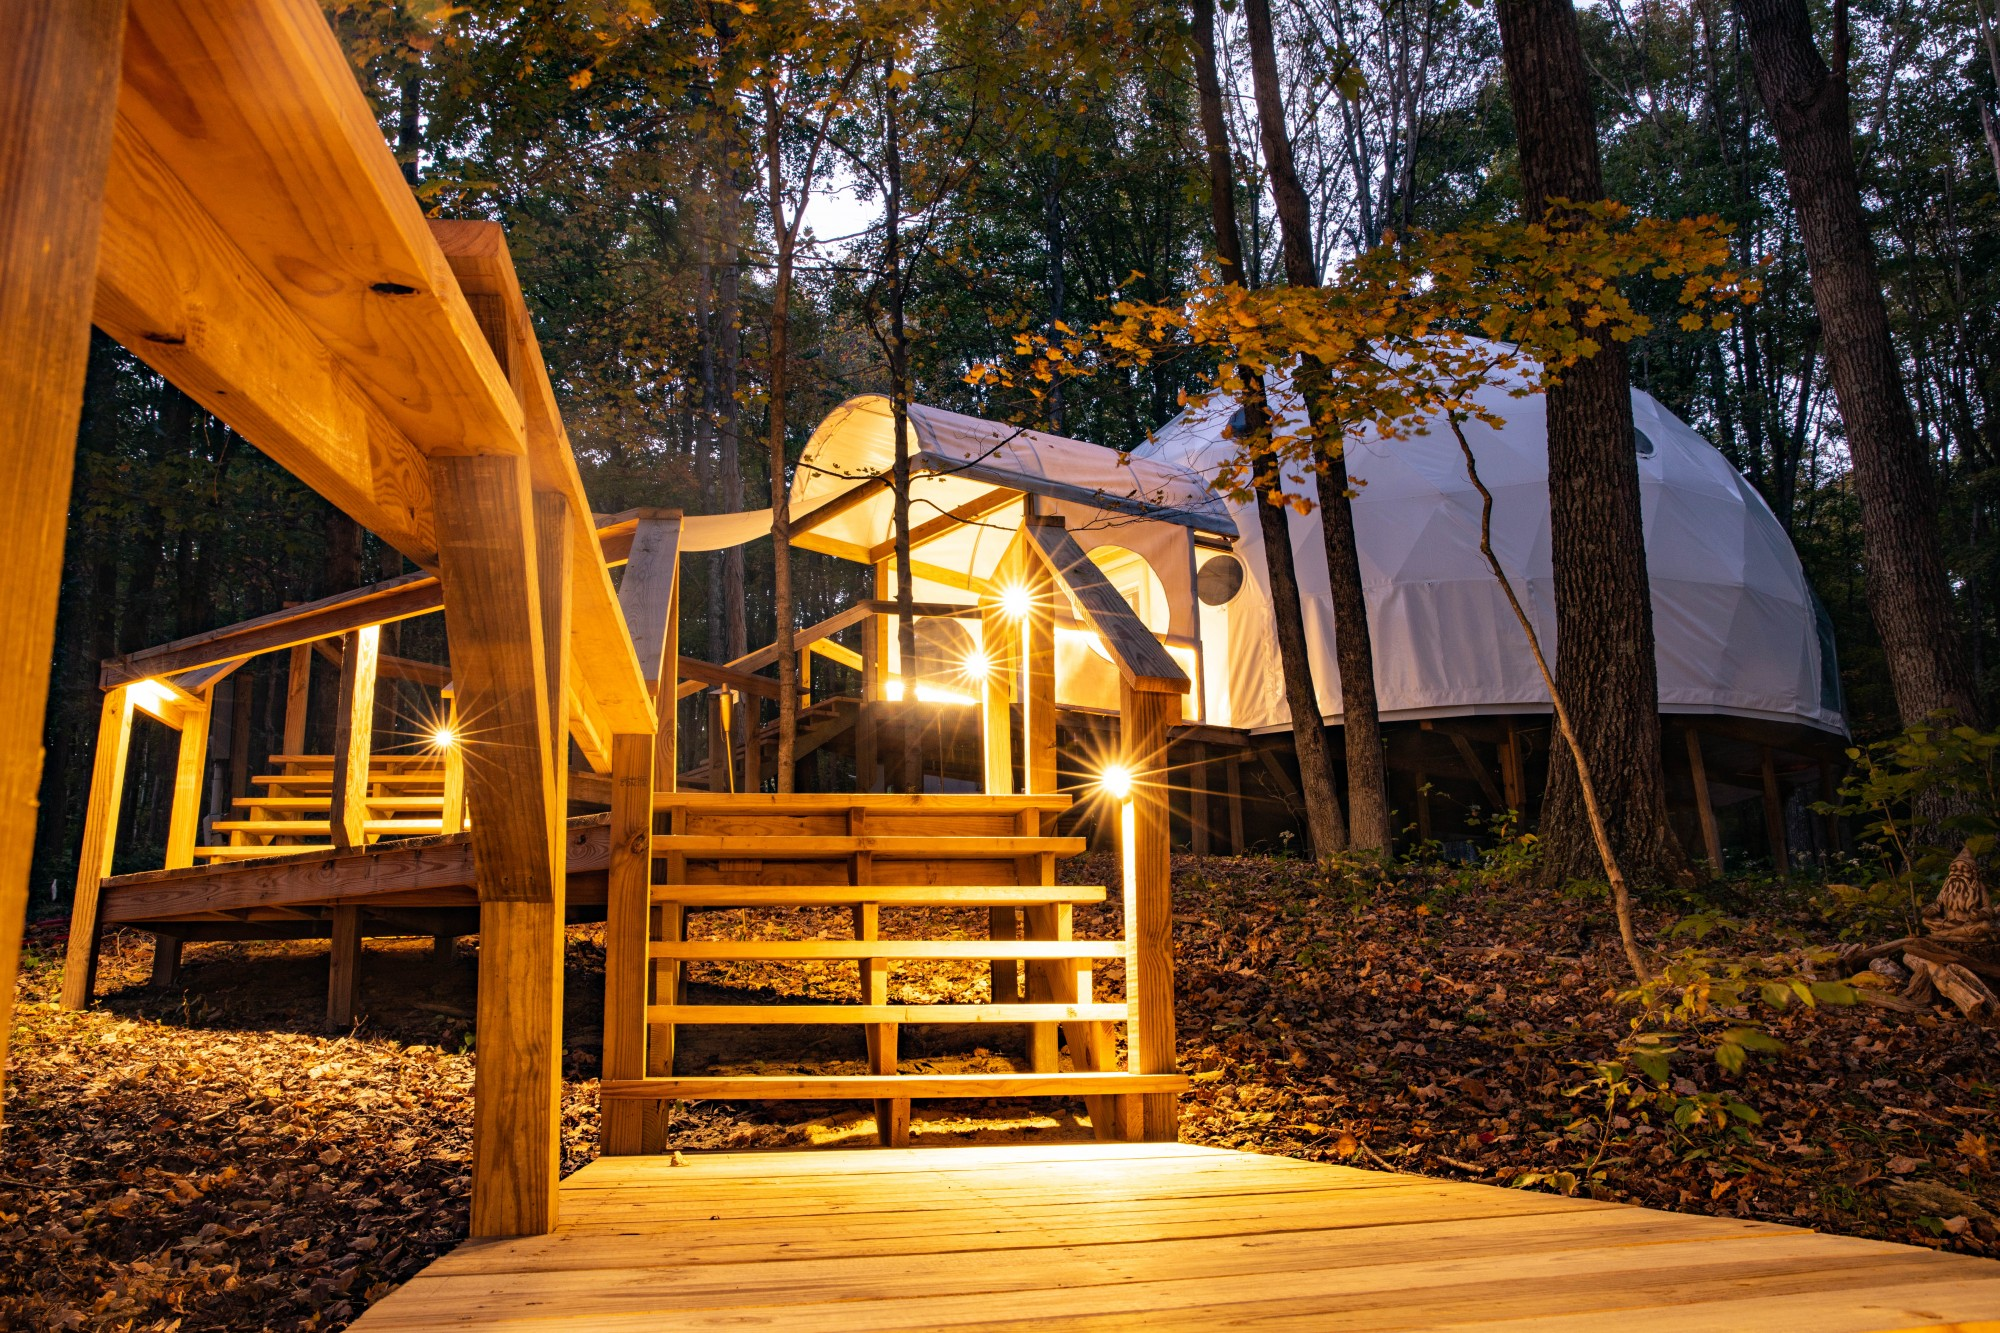 The dome of Geode Yoga + Fitness stands out in the dense forests of Chillicothe, Ohio, on Monday, Oct. 5, 2020.